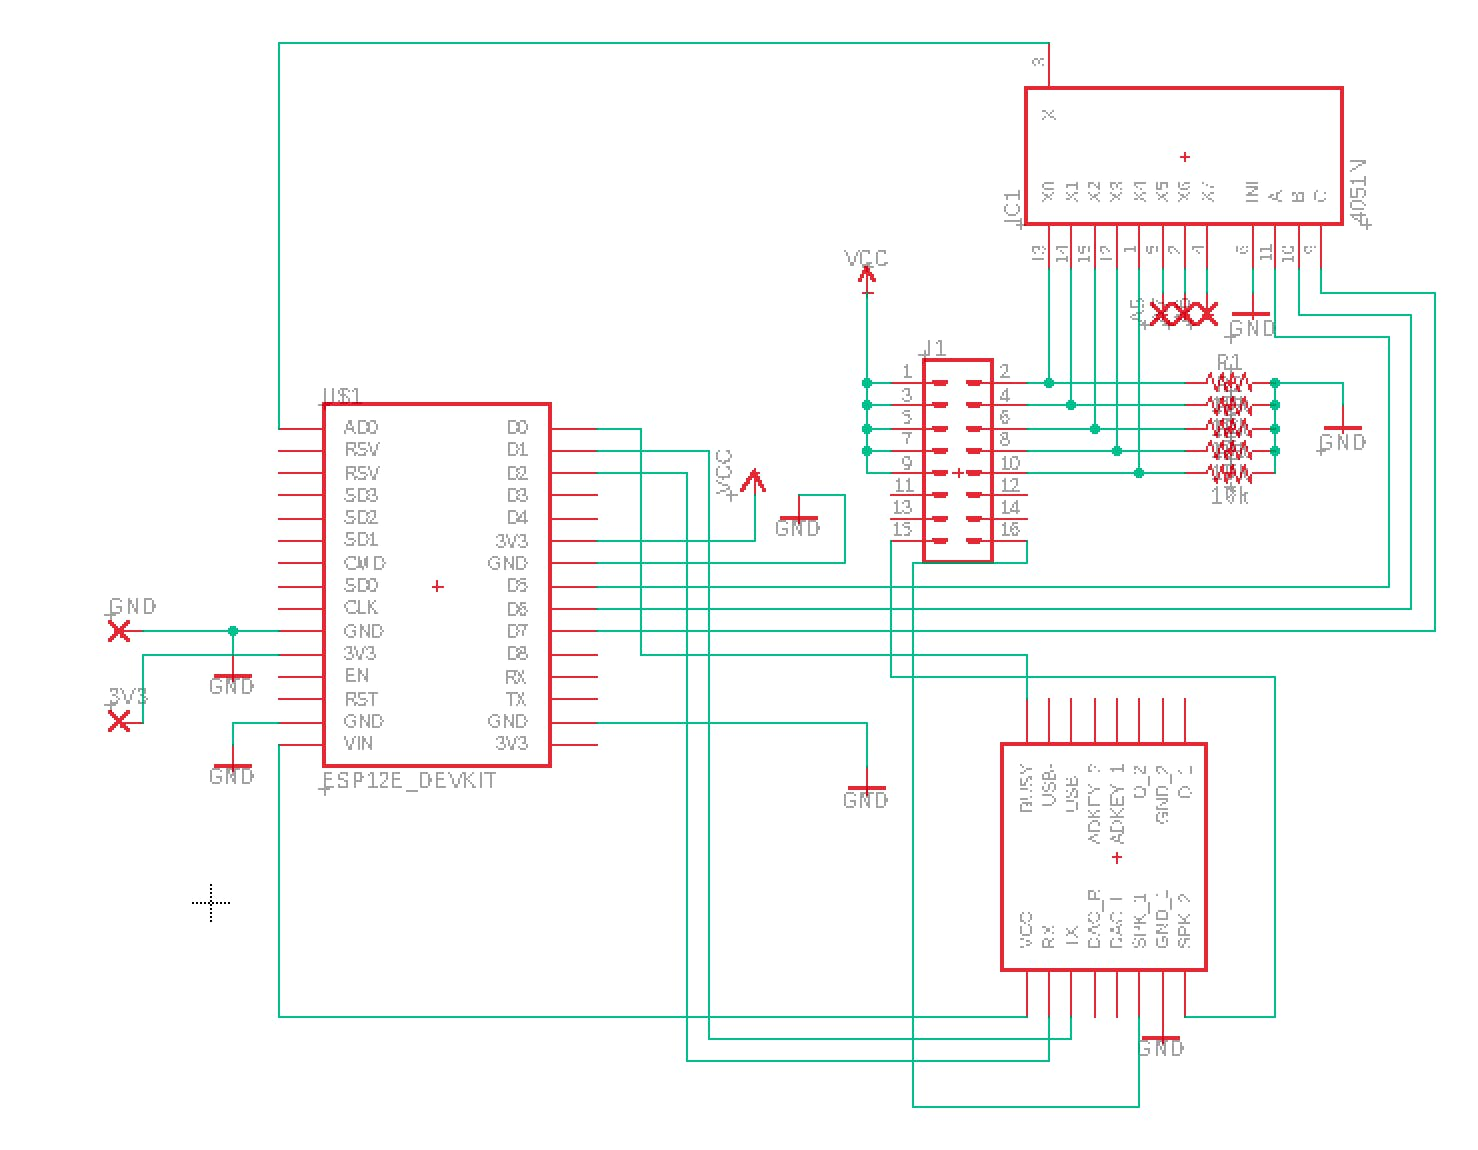 Schematic Of The PCB